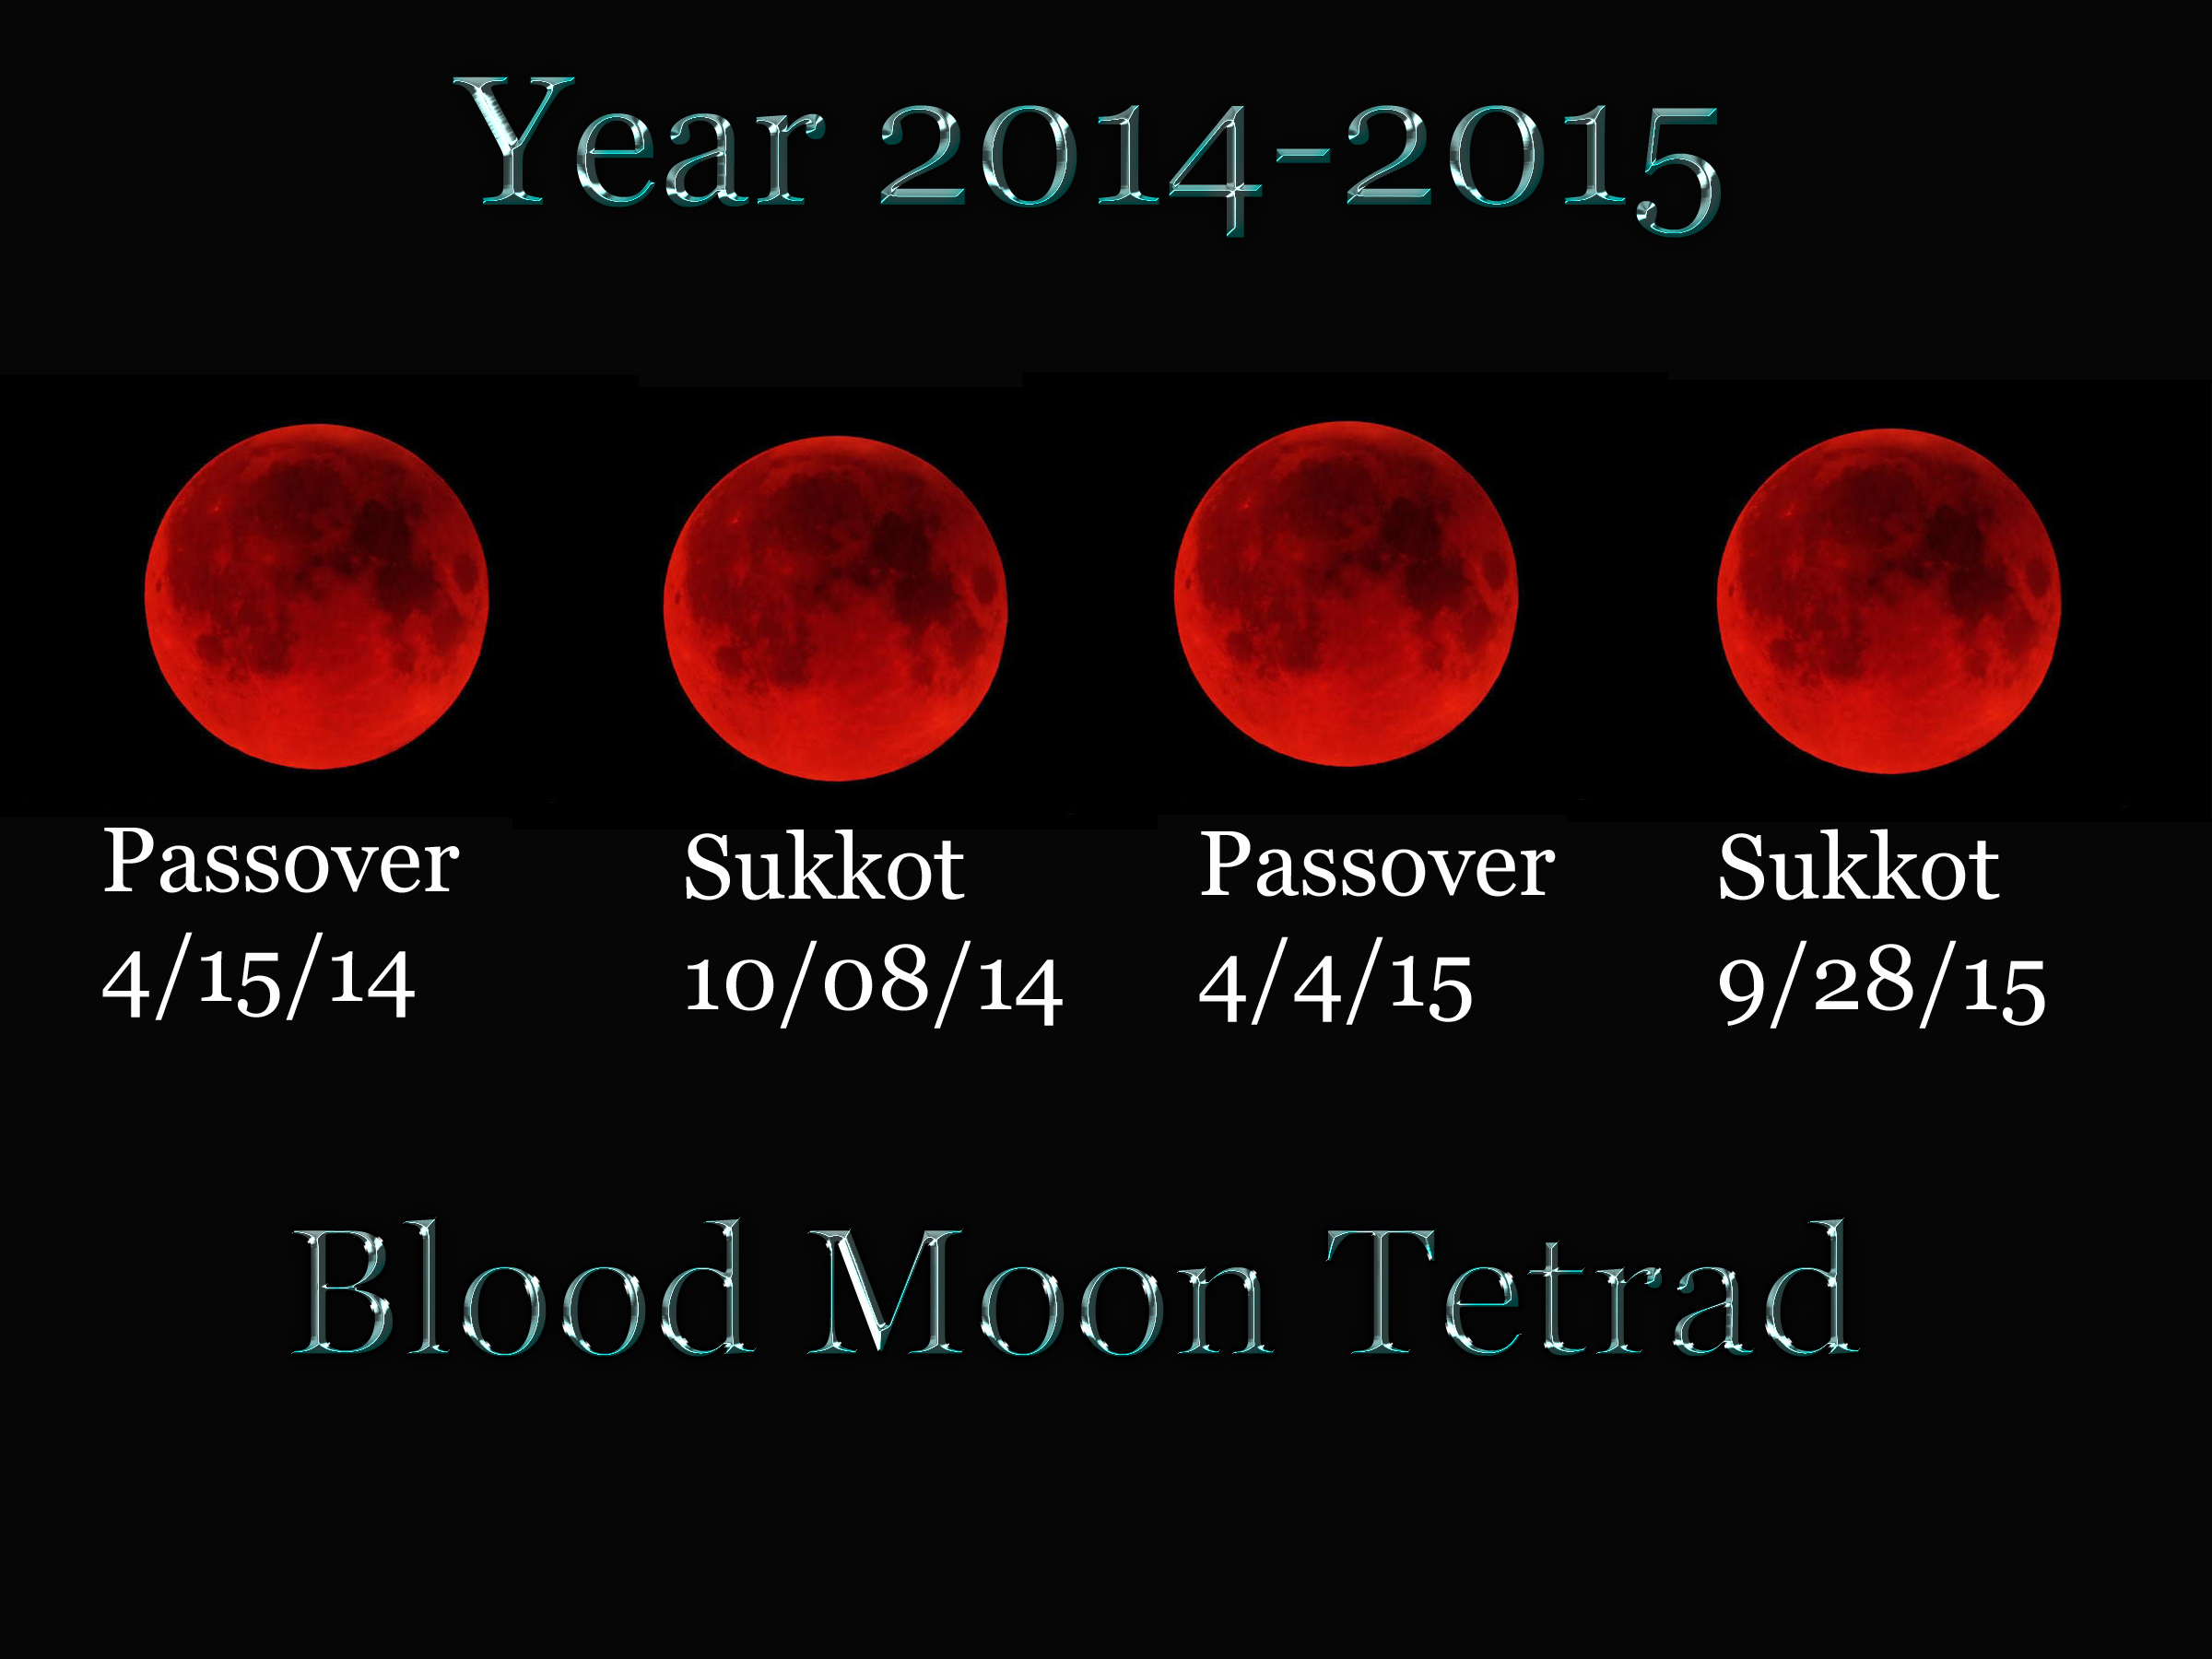 blood moon eclipse bible verse - photo #11